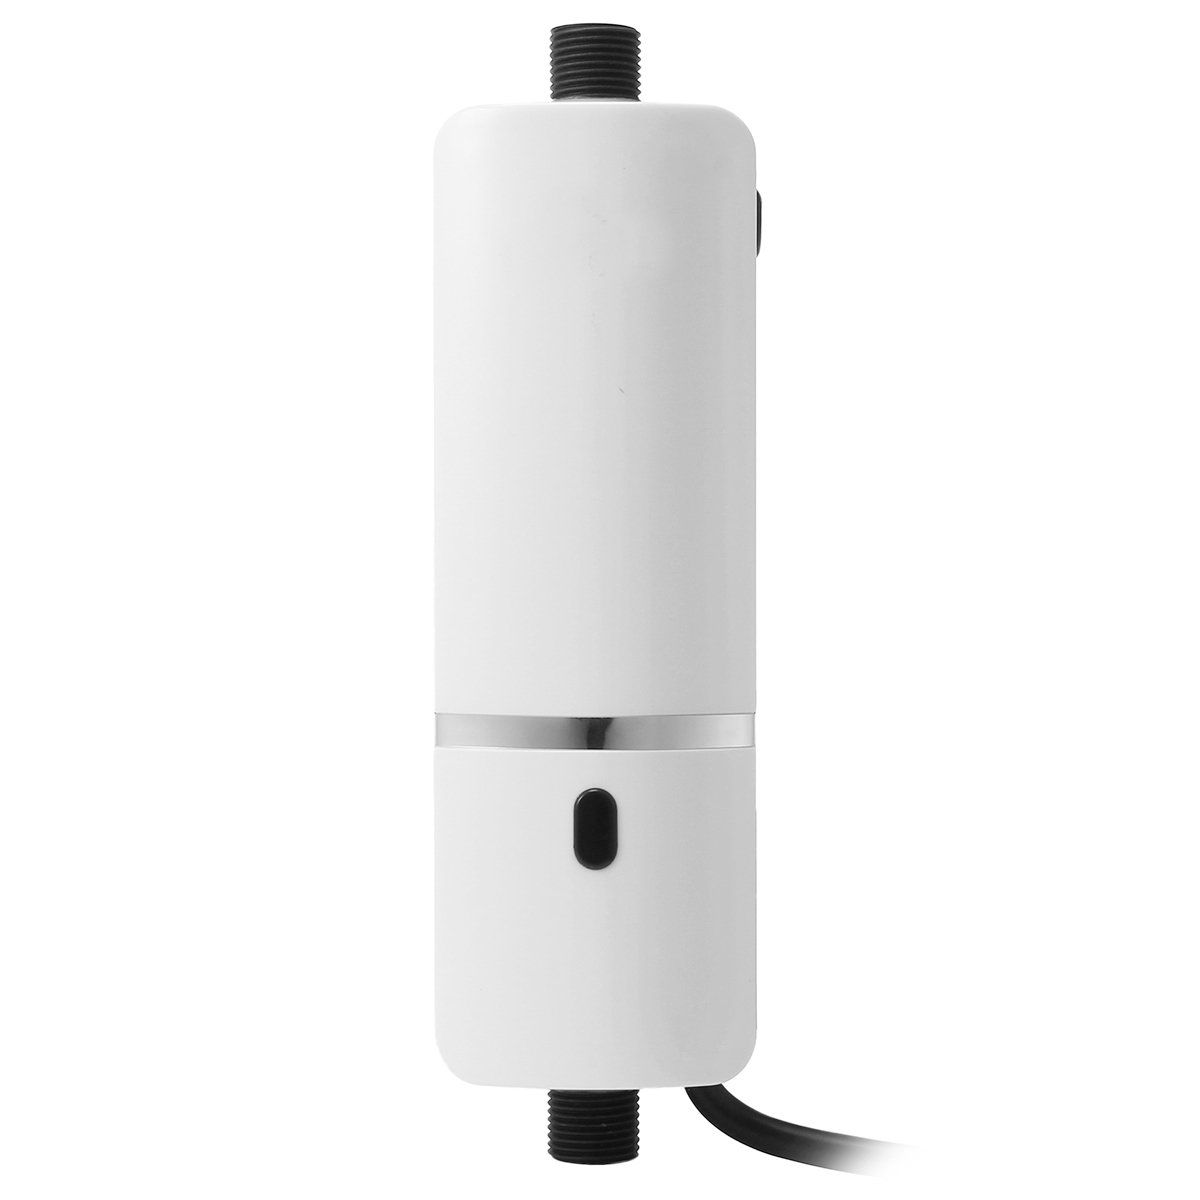 220V 3000W Instant Electric Tankless Water Heater Shower